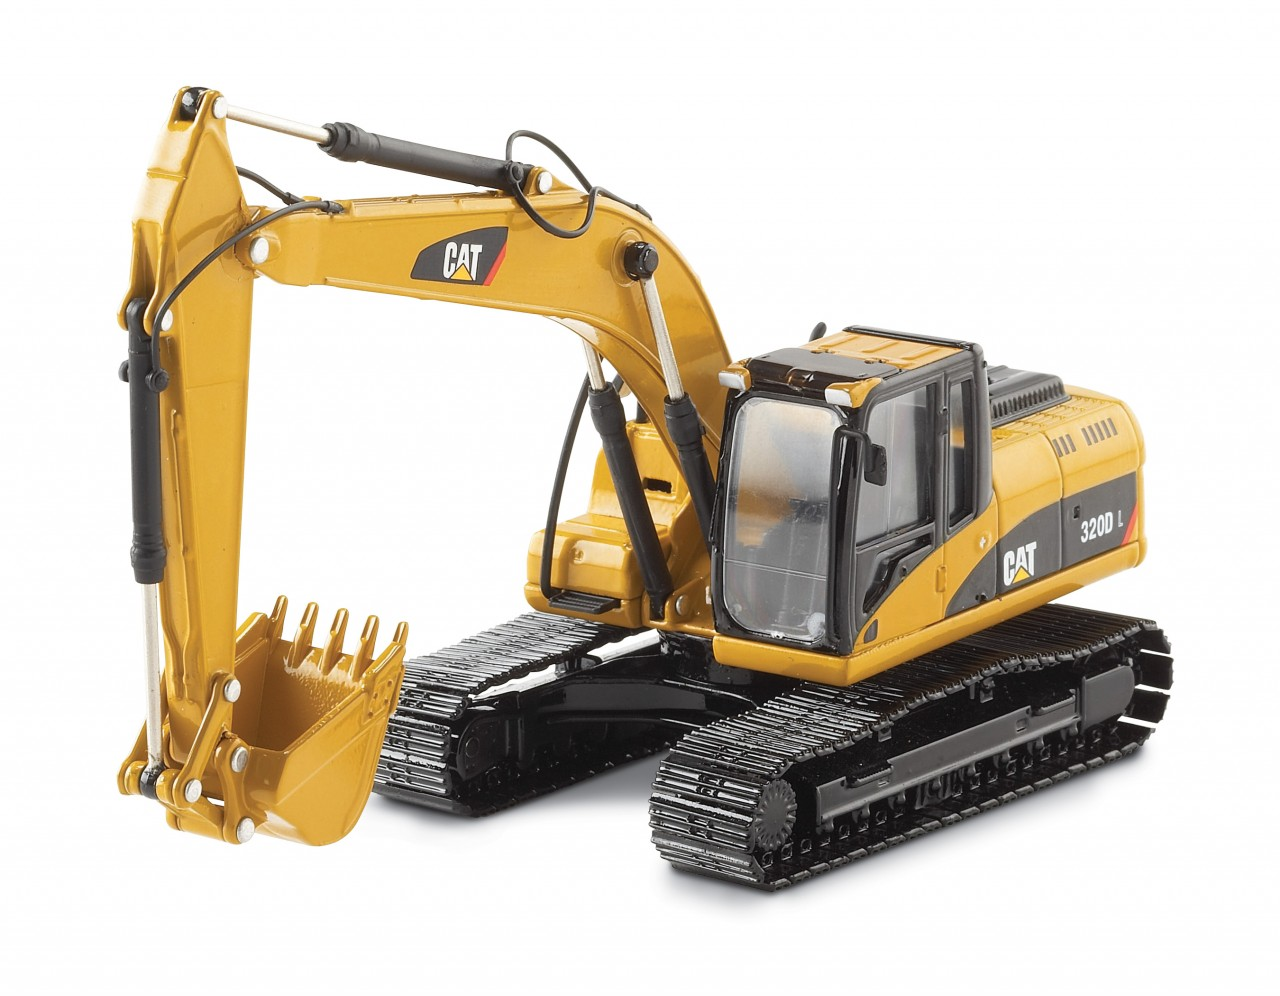 rc machines for adults with Caterpillar 320 Series Demand In on  further Week Techvideo 2010 21 Lego Technic At further MOTORART300047 also 1708 also 181853362499.